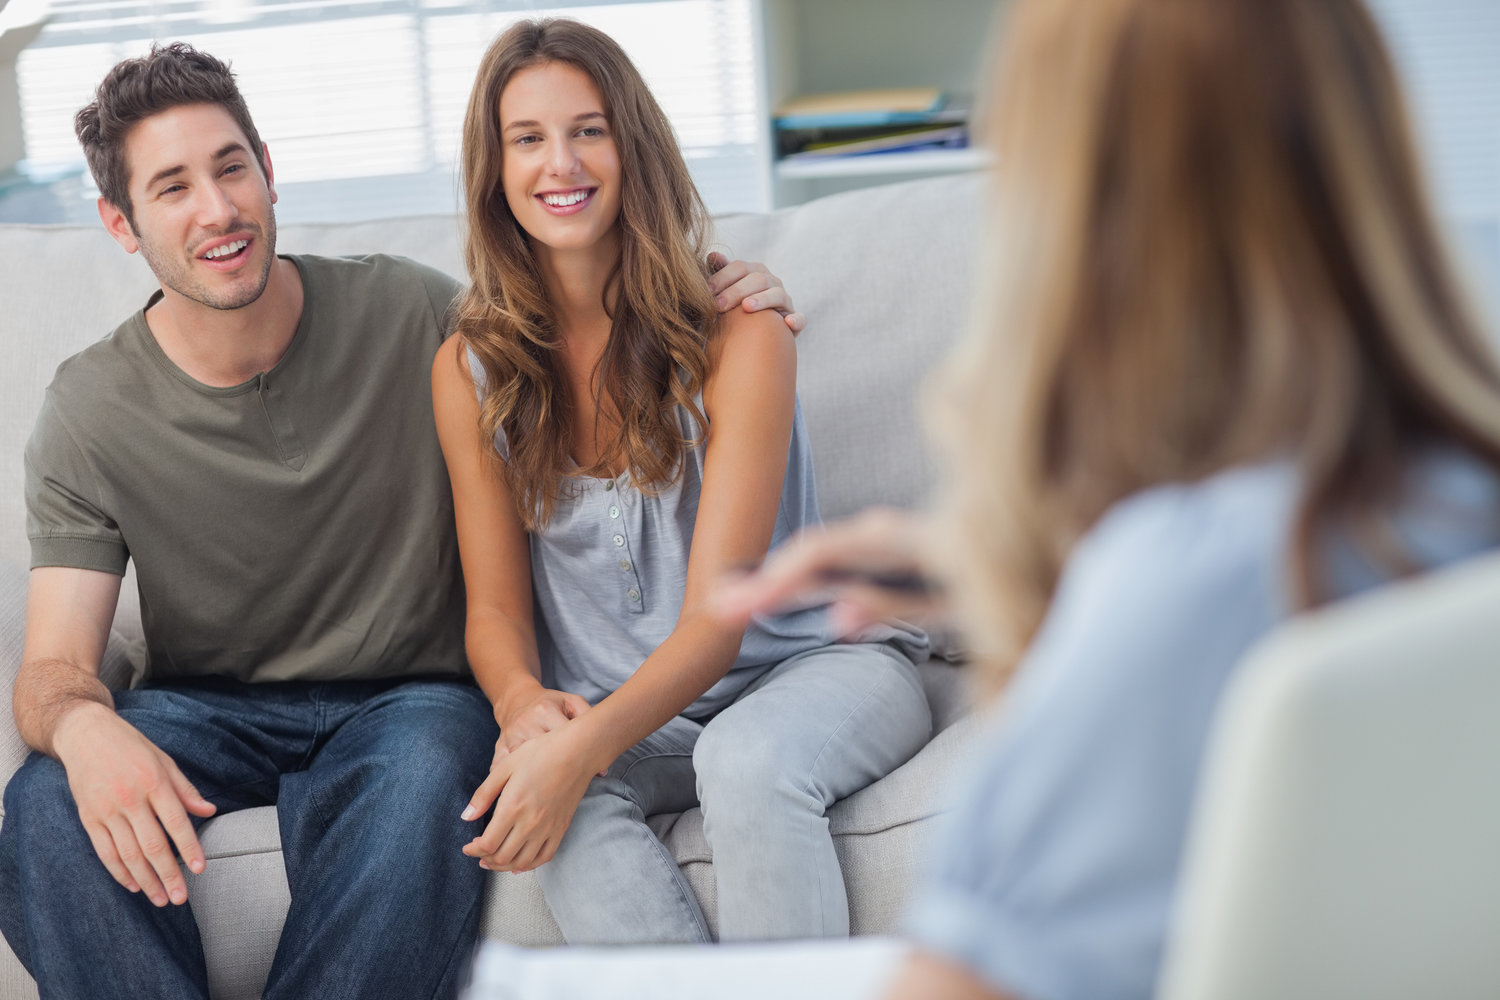 Napa Valley's Premier Boutique-Style Relationship Therapy Center  - Our highly specialized clinicians utilize innovative treatment modalities for relationships & sex issues, trauma, and attachment healing.